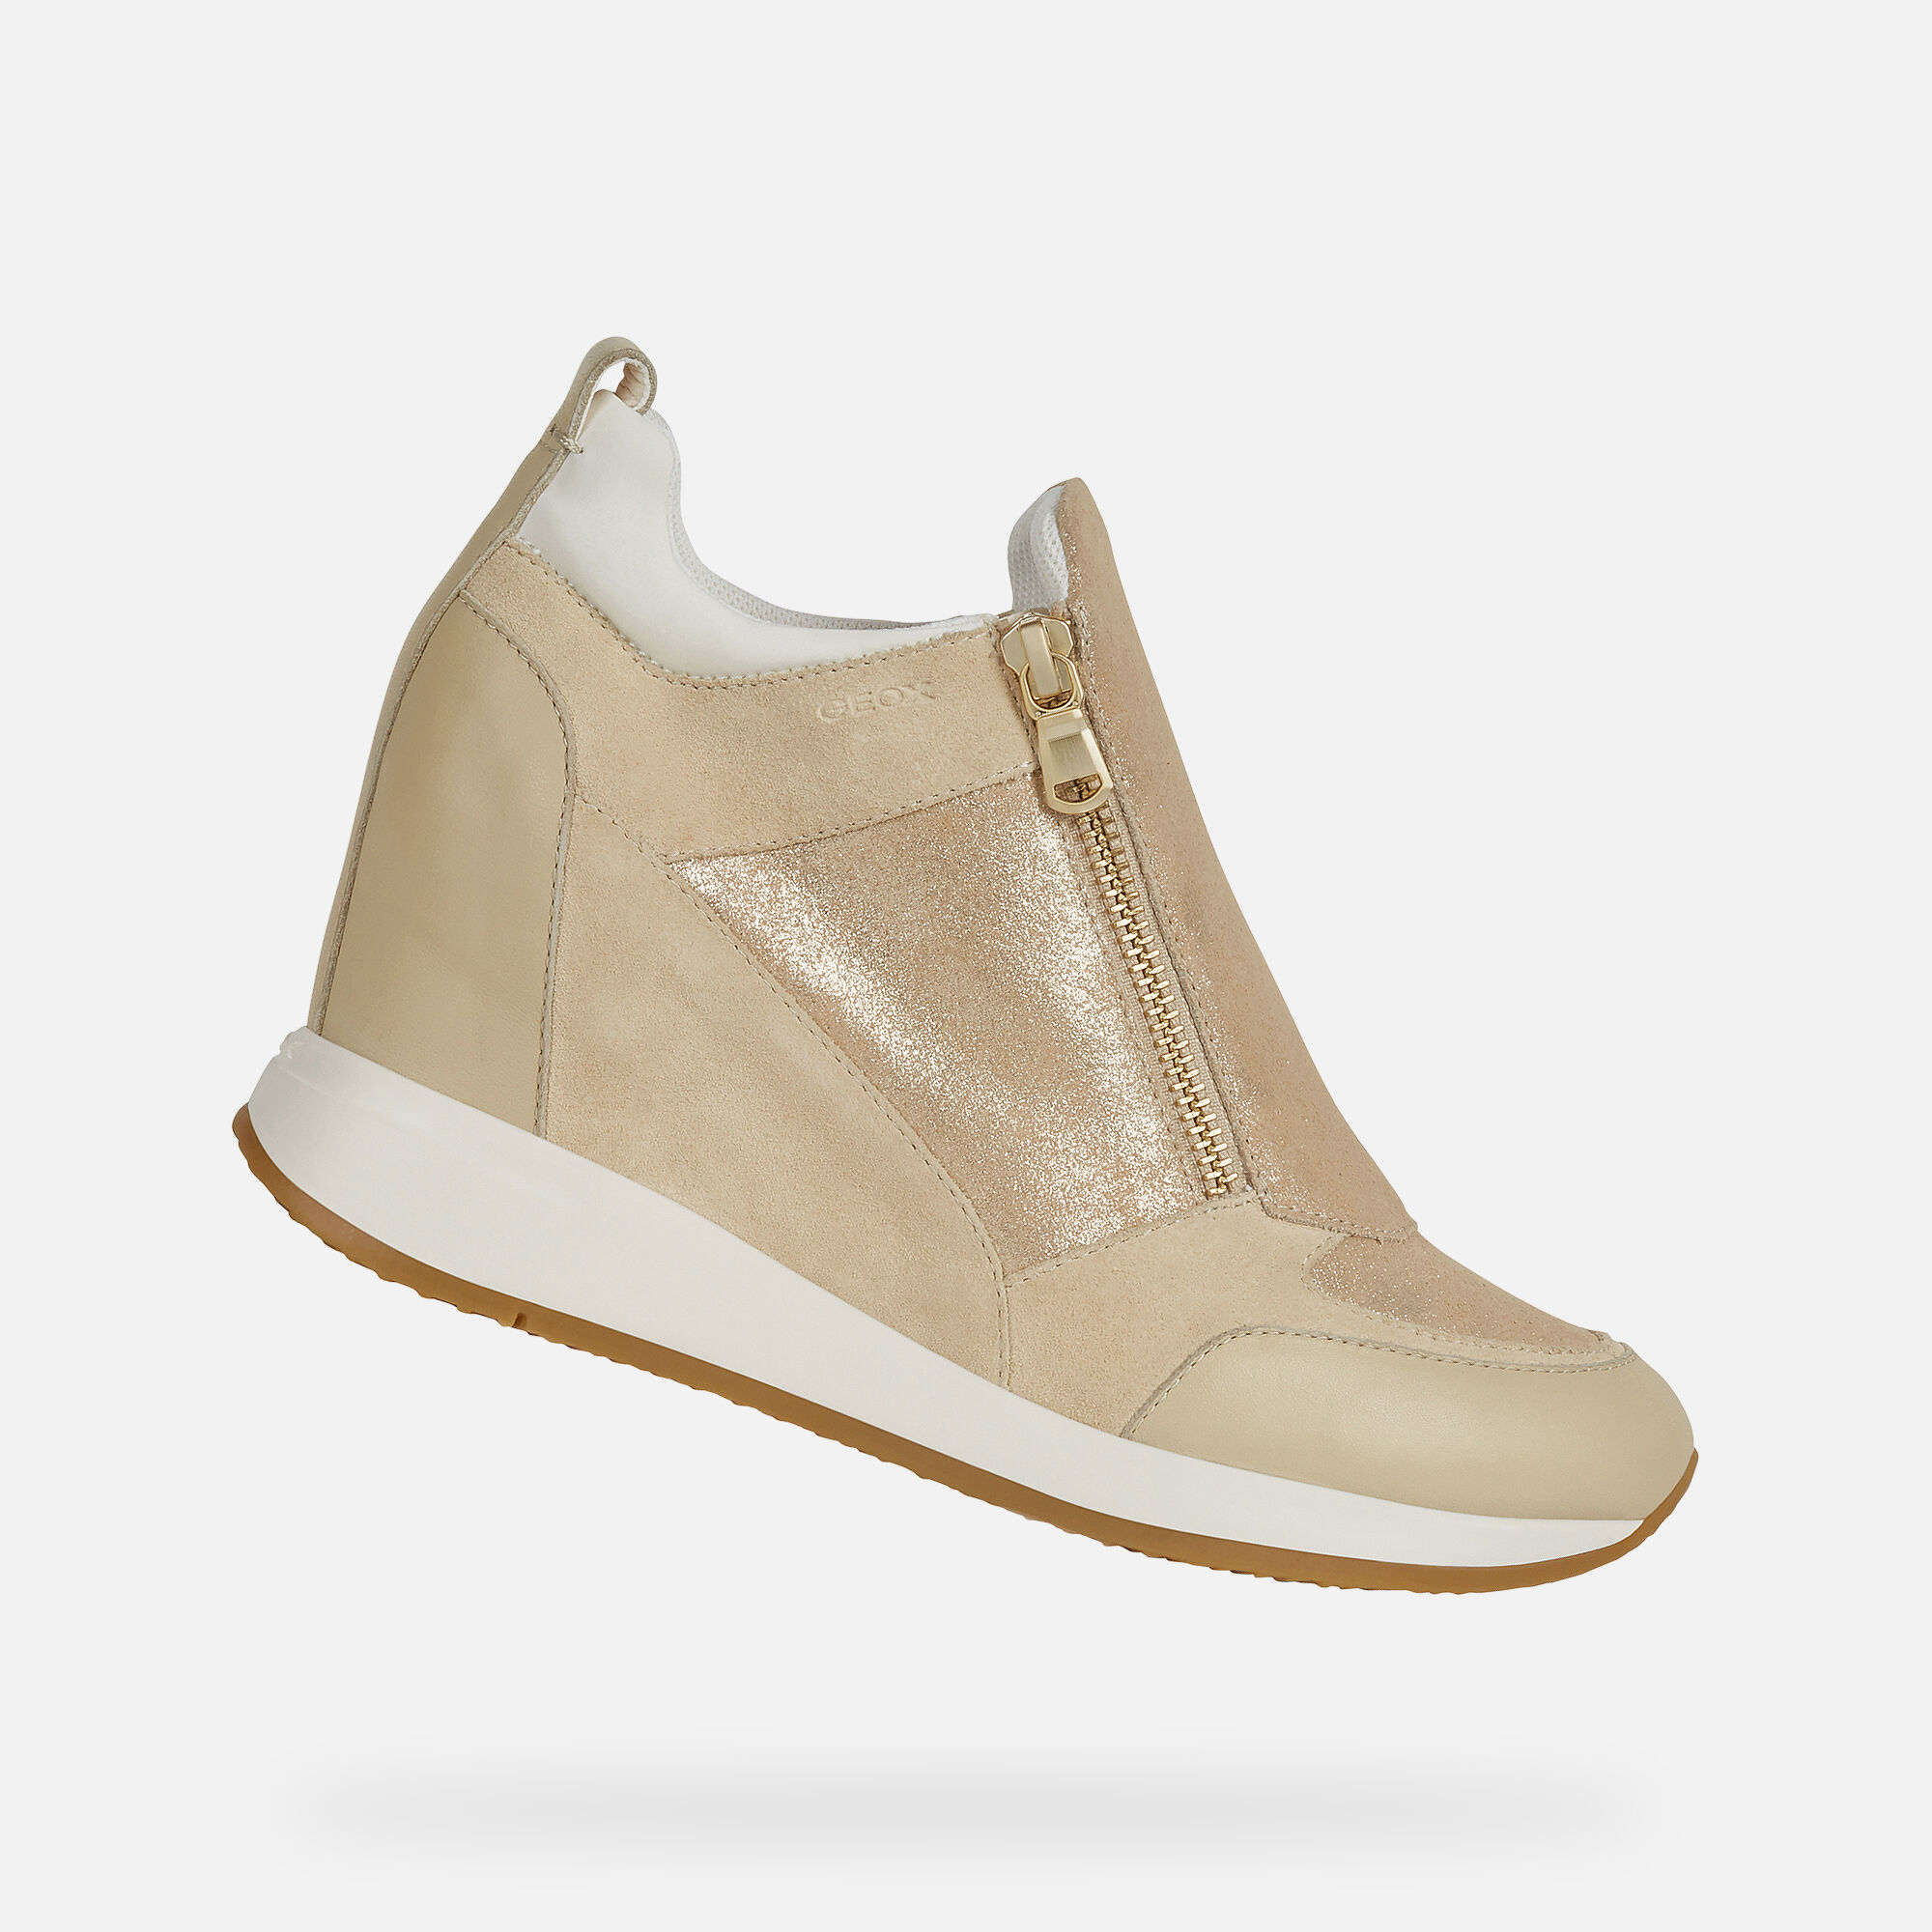 Shop Geox Nydame Leather & Suede Wedge Sneaker On Sale